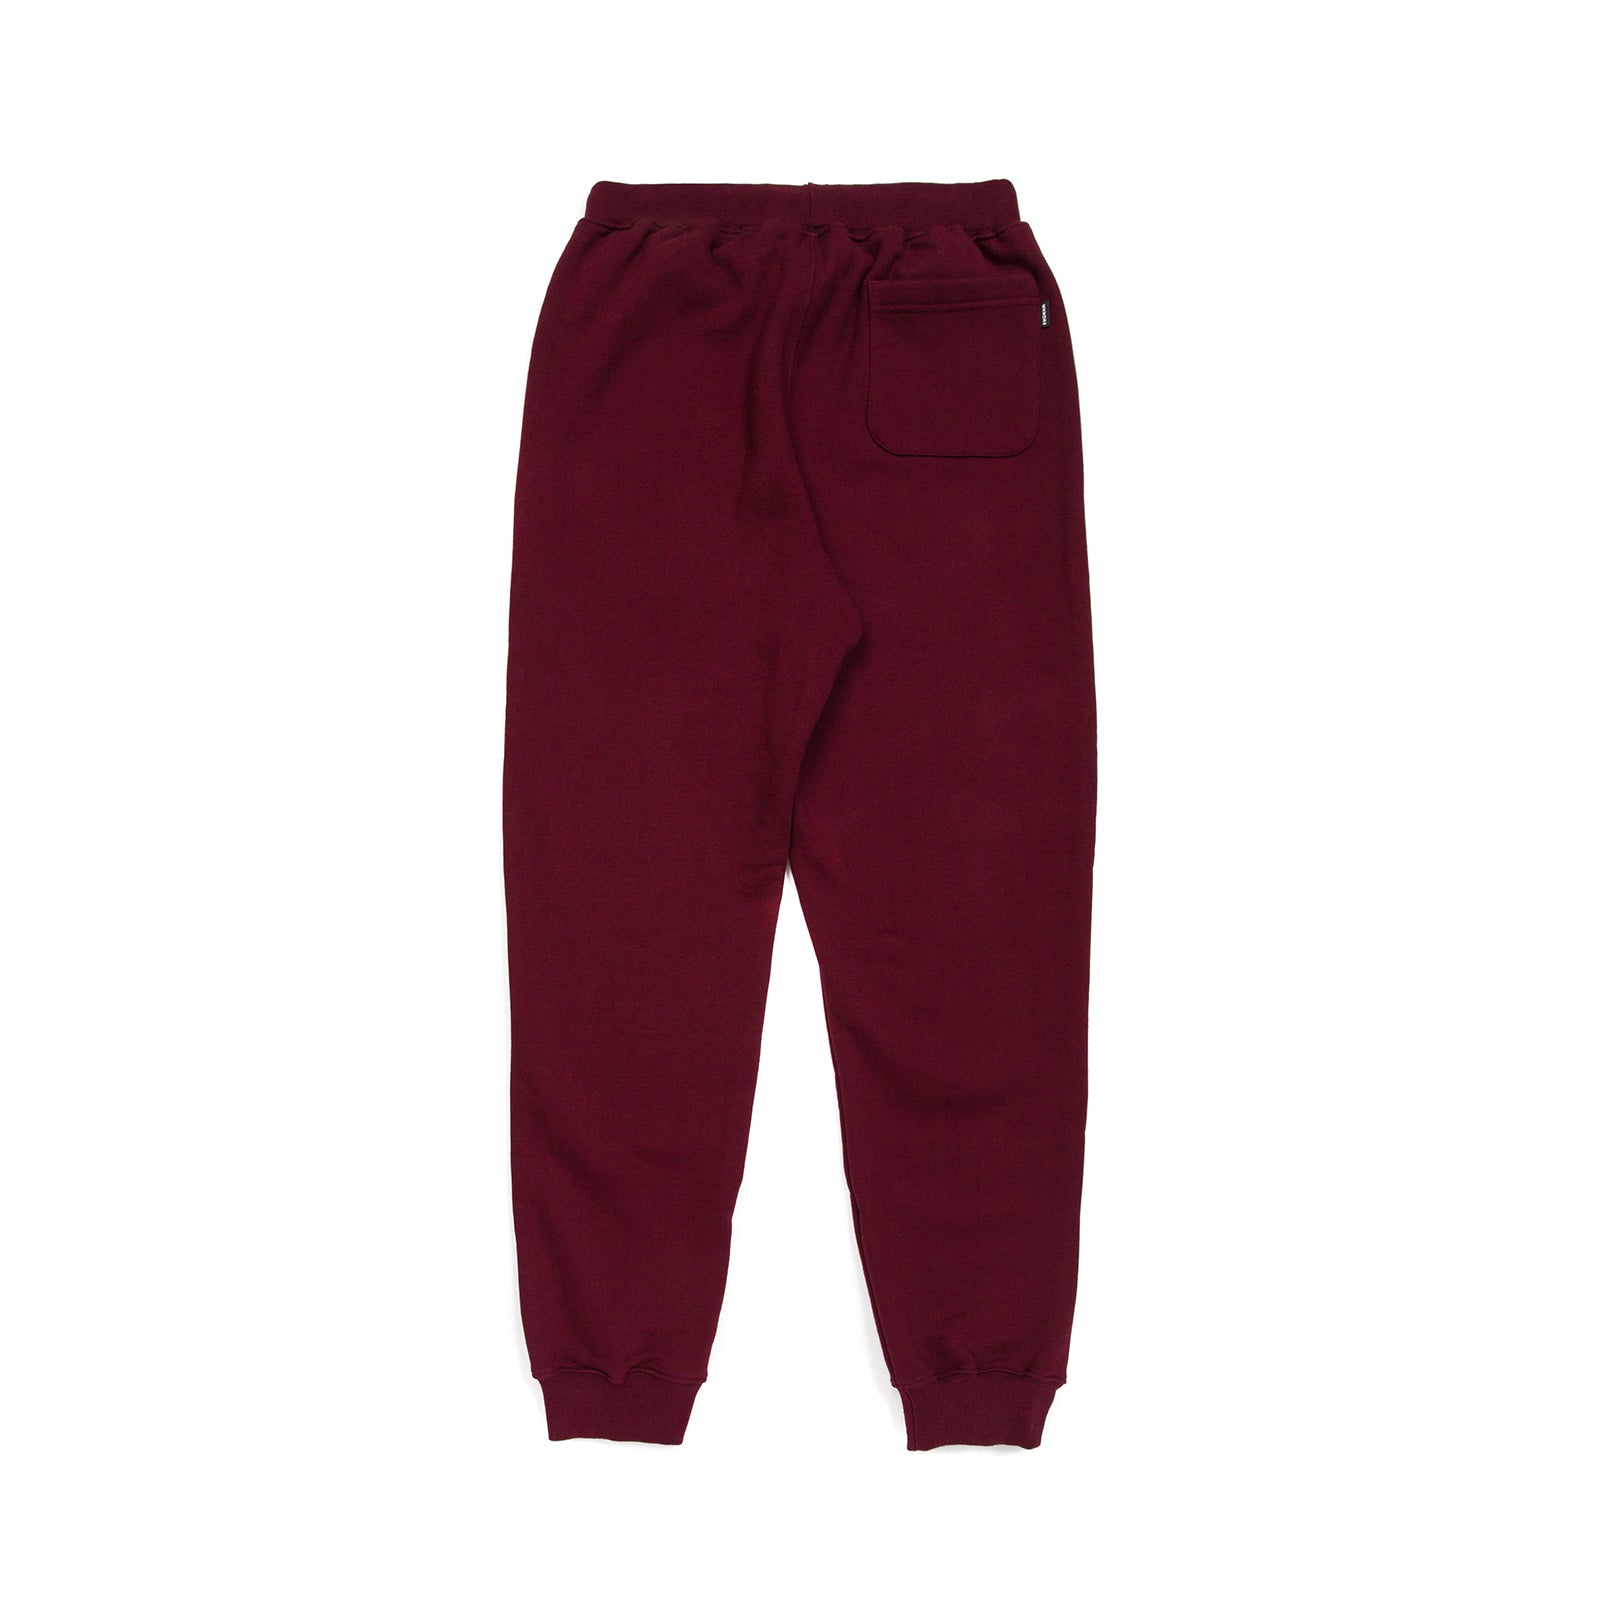 W SWEAT PANTS (BURGUNDY)